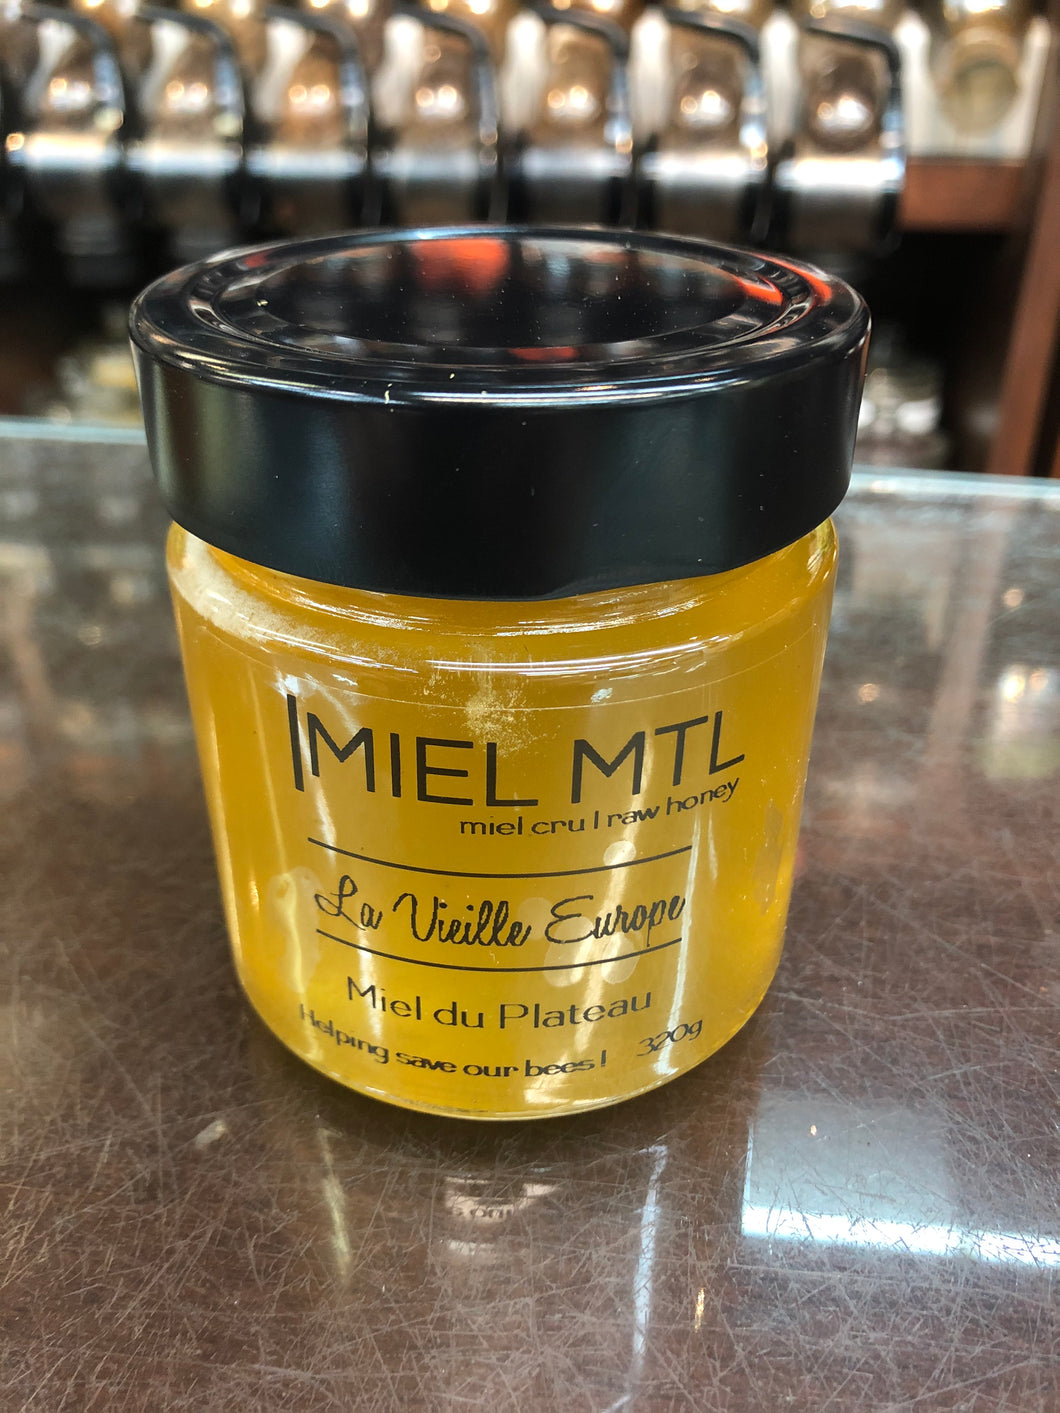 Miel MTL La Vieille Europe